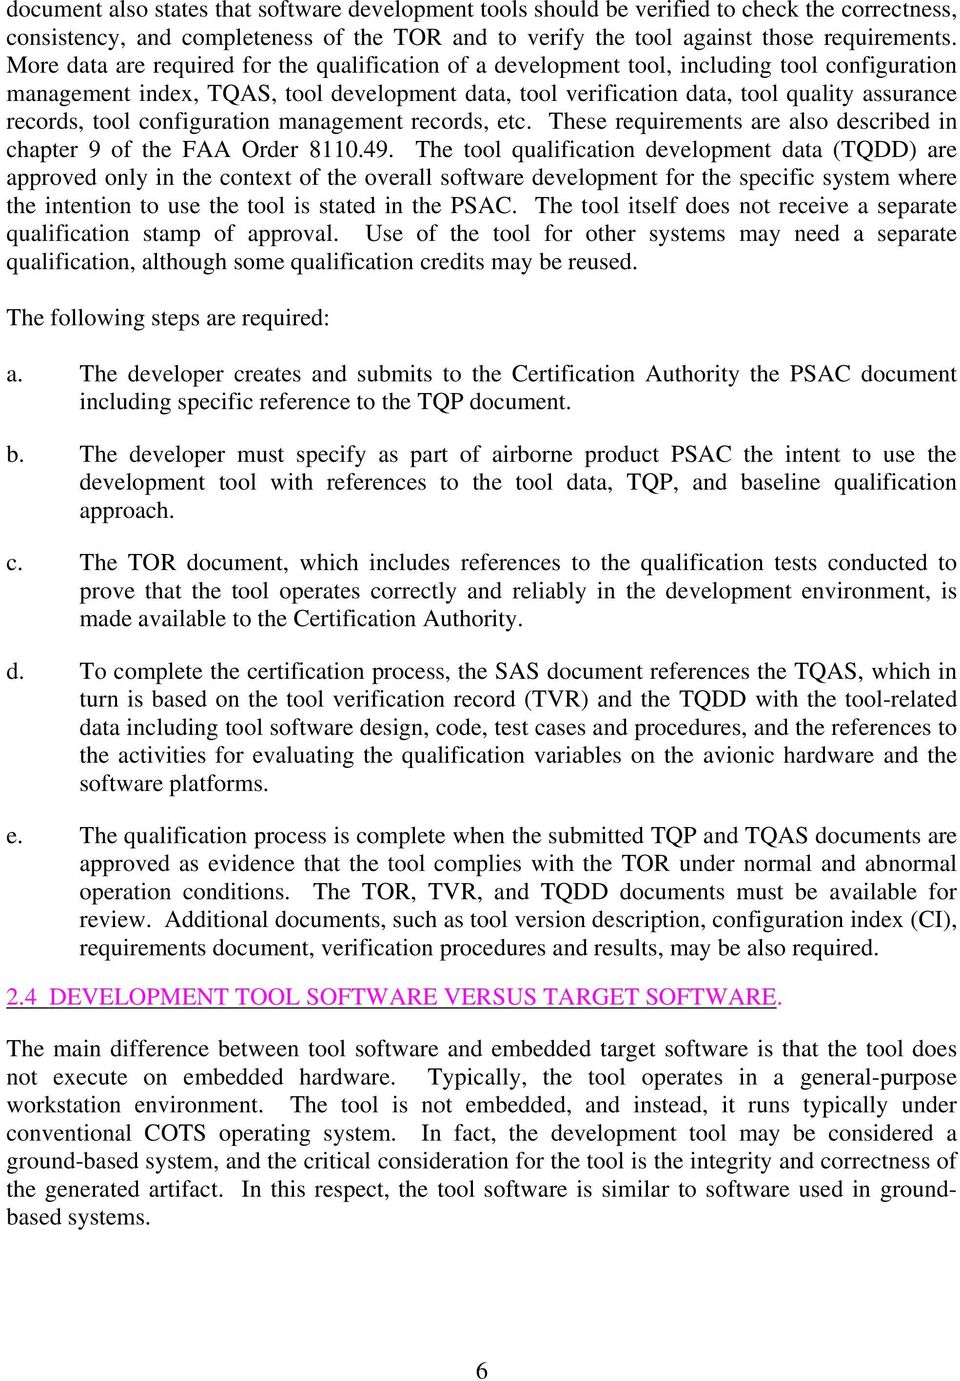 tool configuration management records, etc. These requirements are also described in chapter 9 of the FAA Order 8110.49.